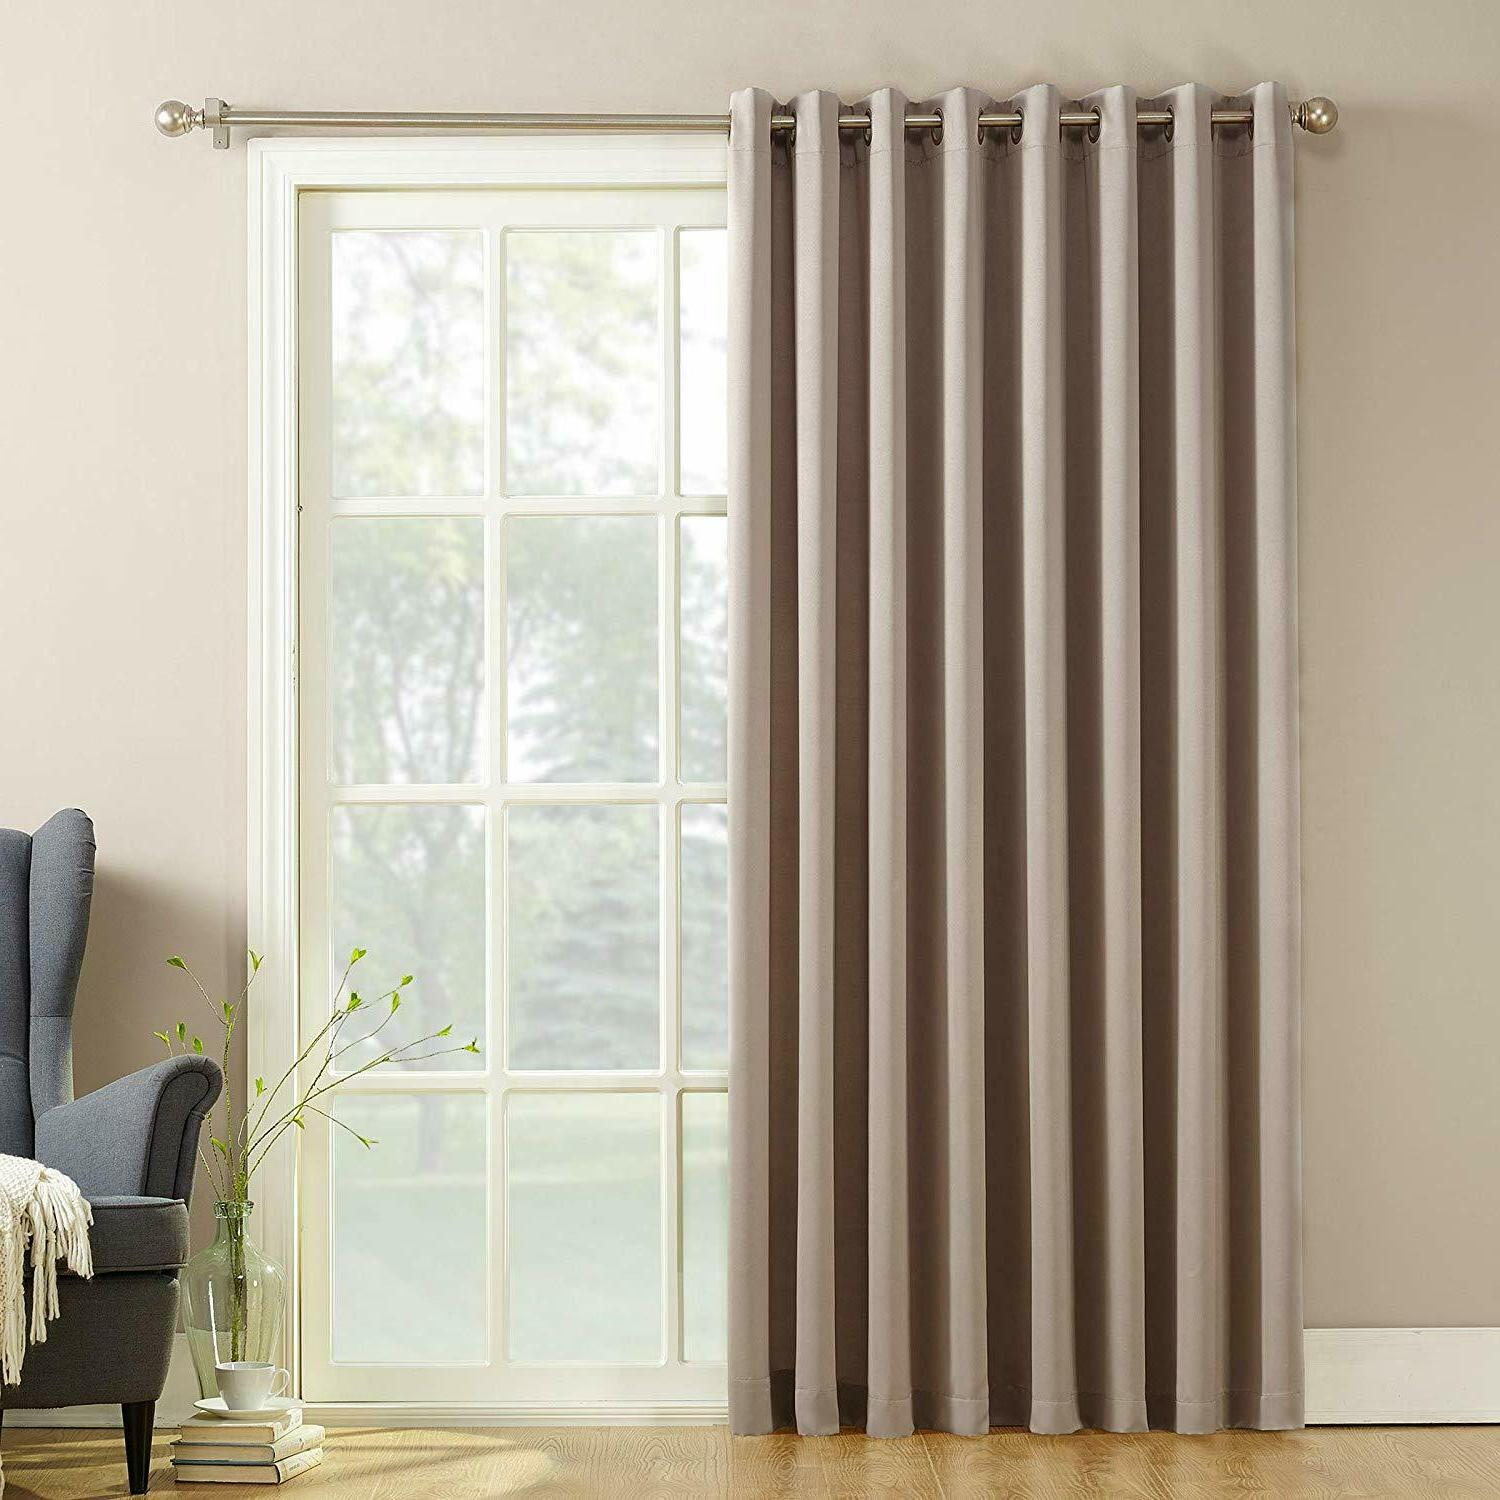 Patio Door Blinds Outdoor Sliding Curtain Extra Wide Glass W